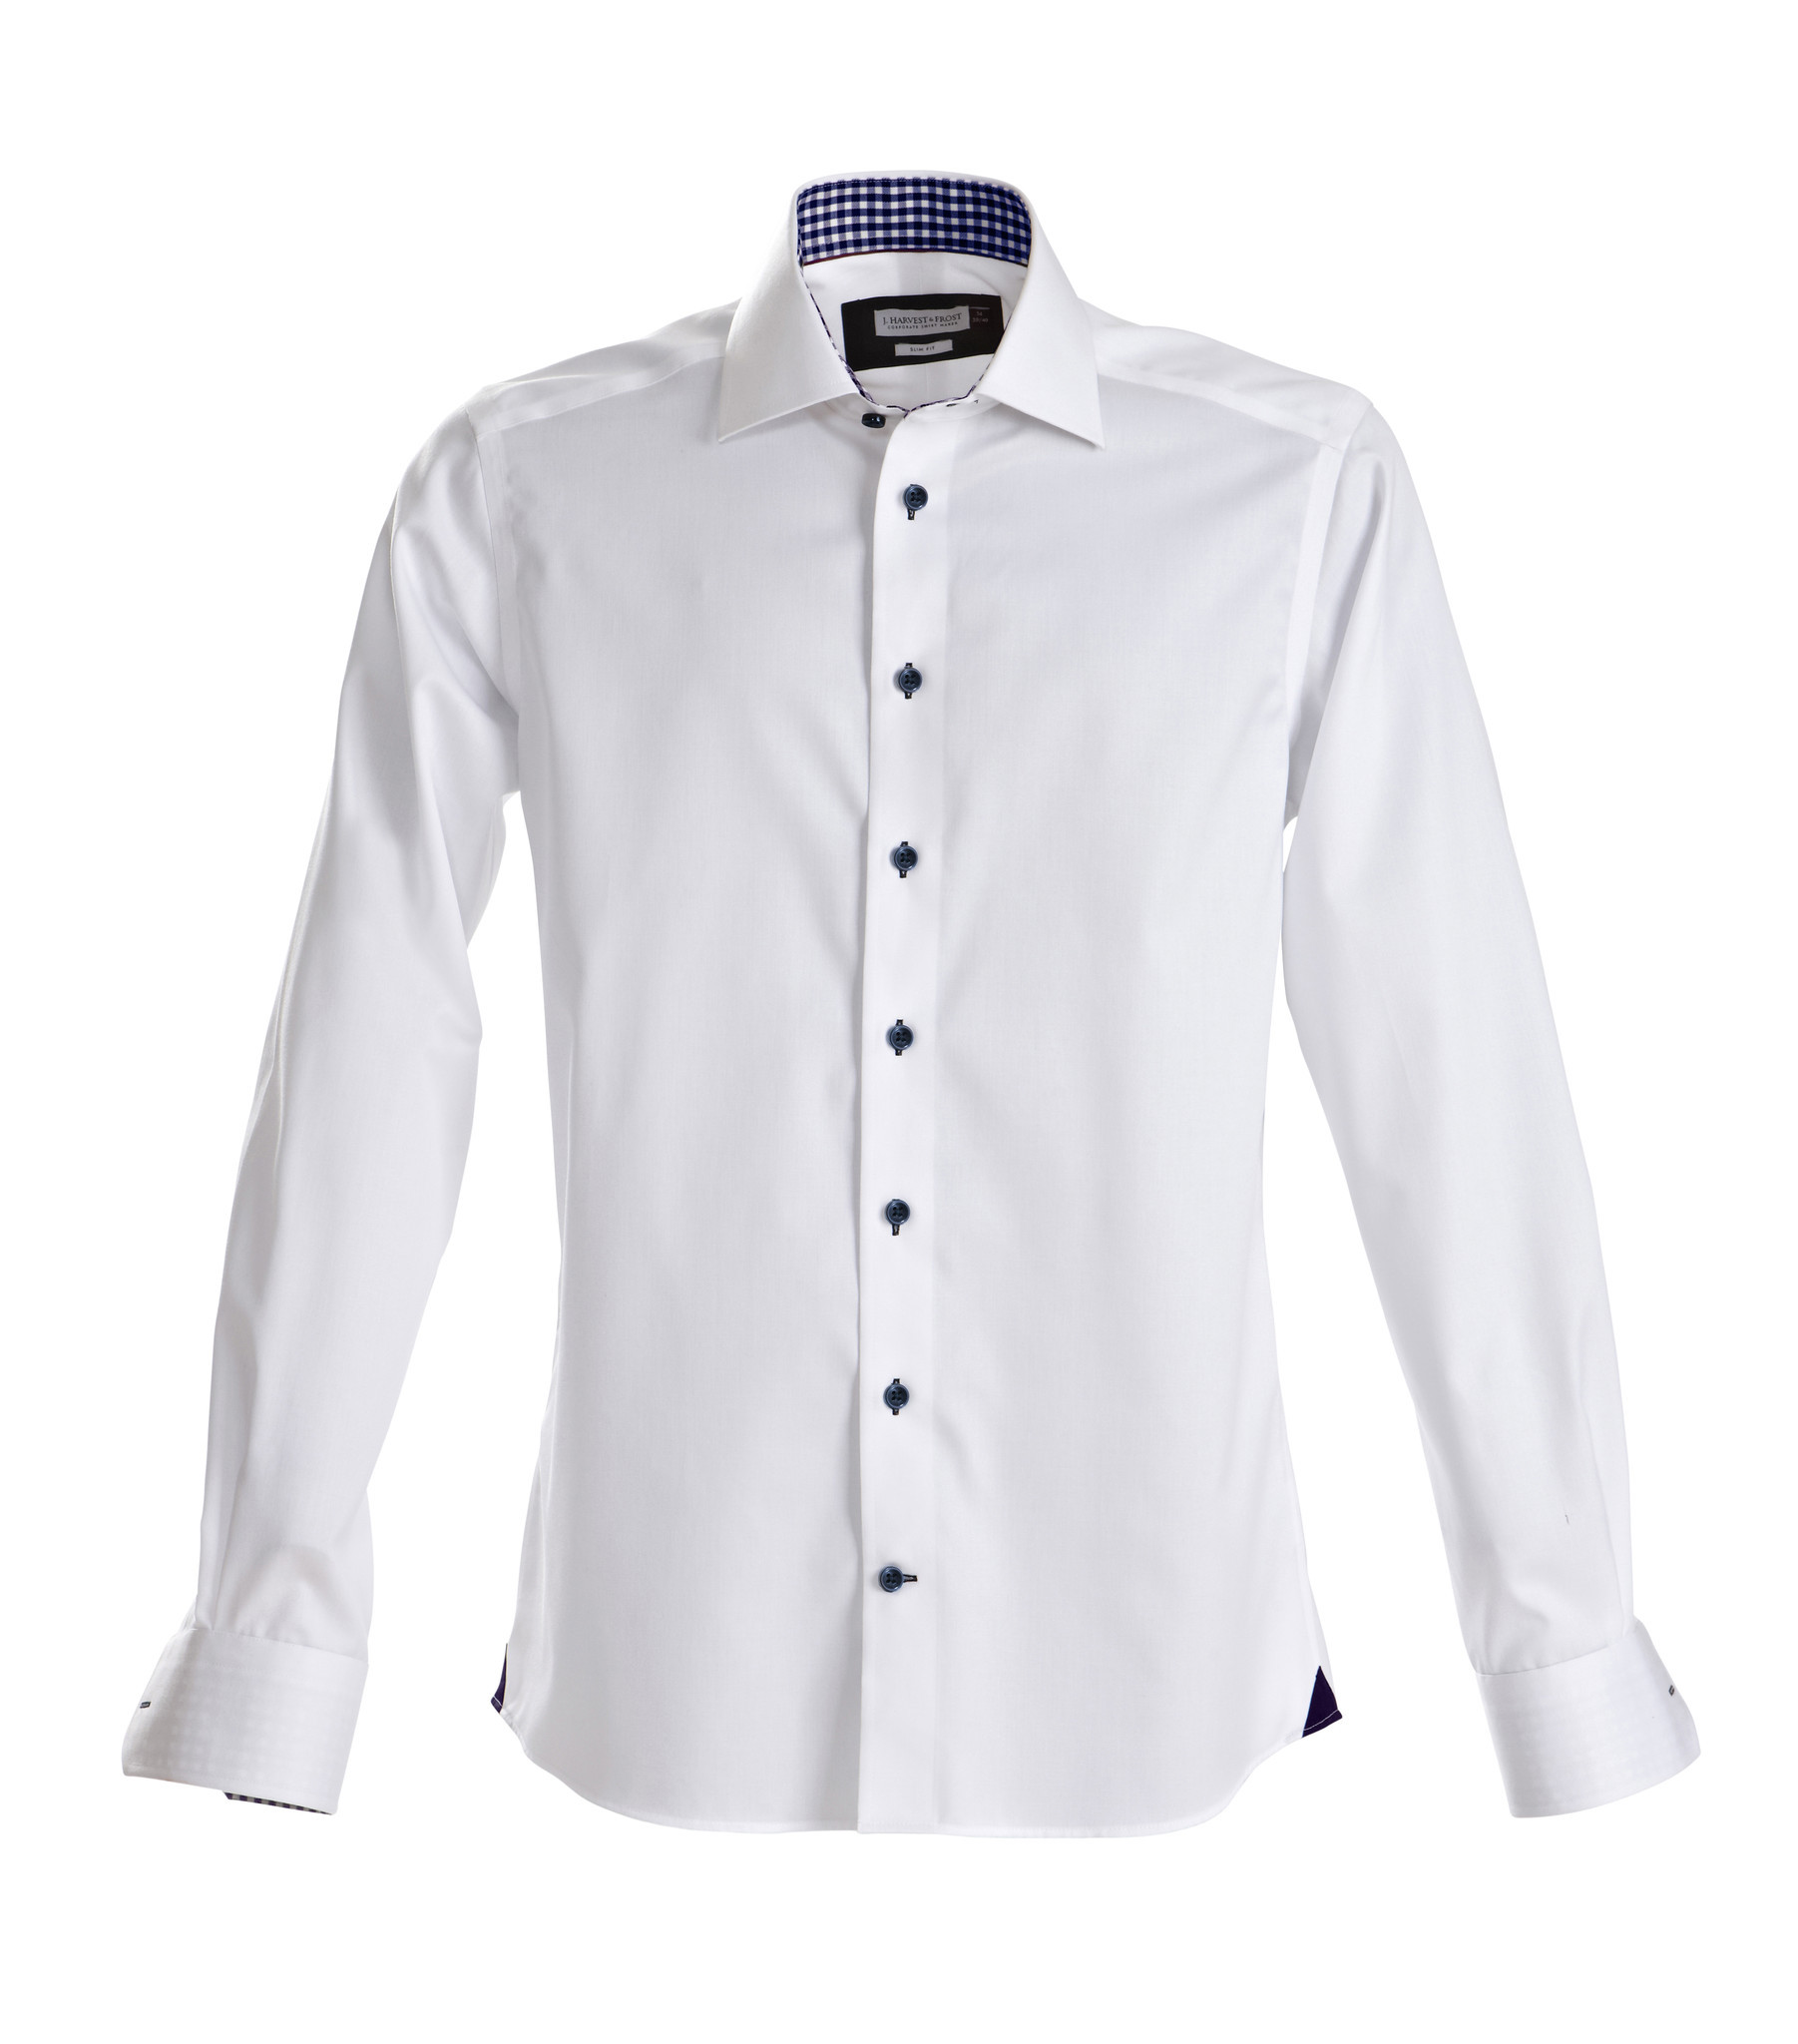 Red bow 20 - 1066 White/navy Velikost: 43/44-XL, Střih: SLIM FIT